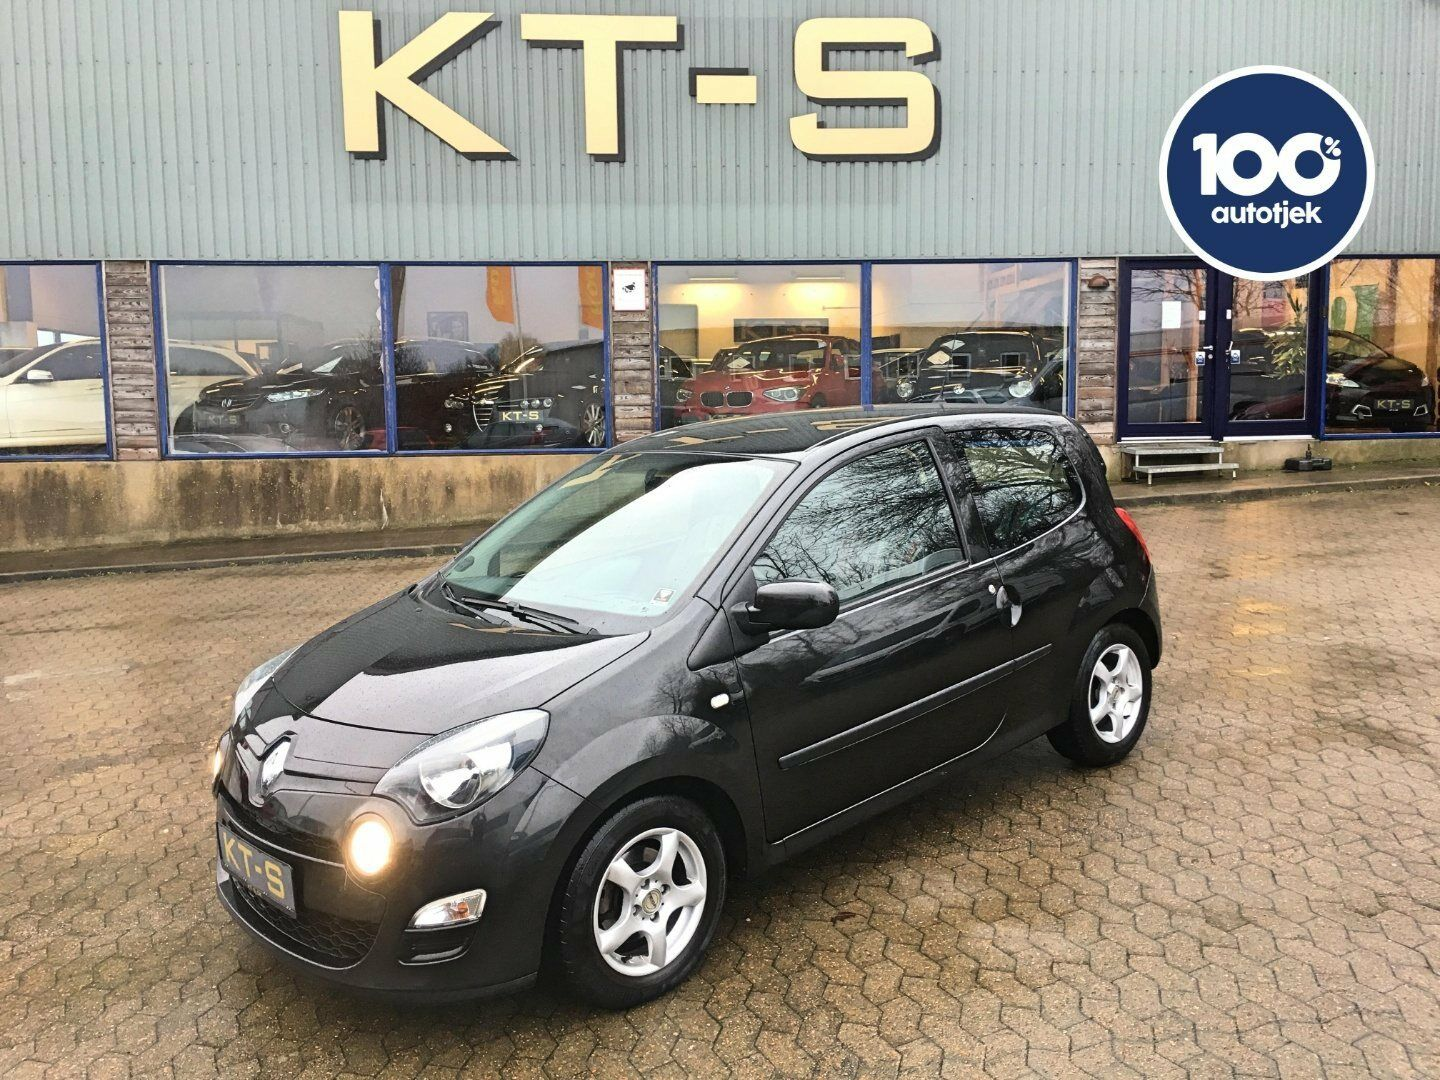 Renault Twingo 1,2 16V Authentique ECO2 3d - 54.900 kr.